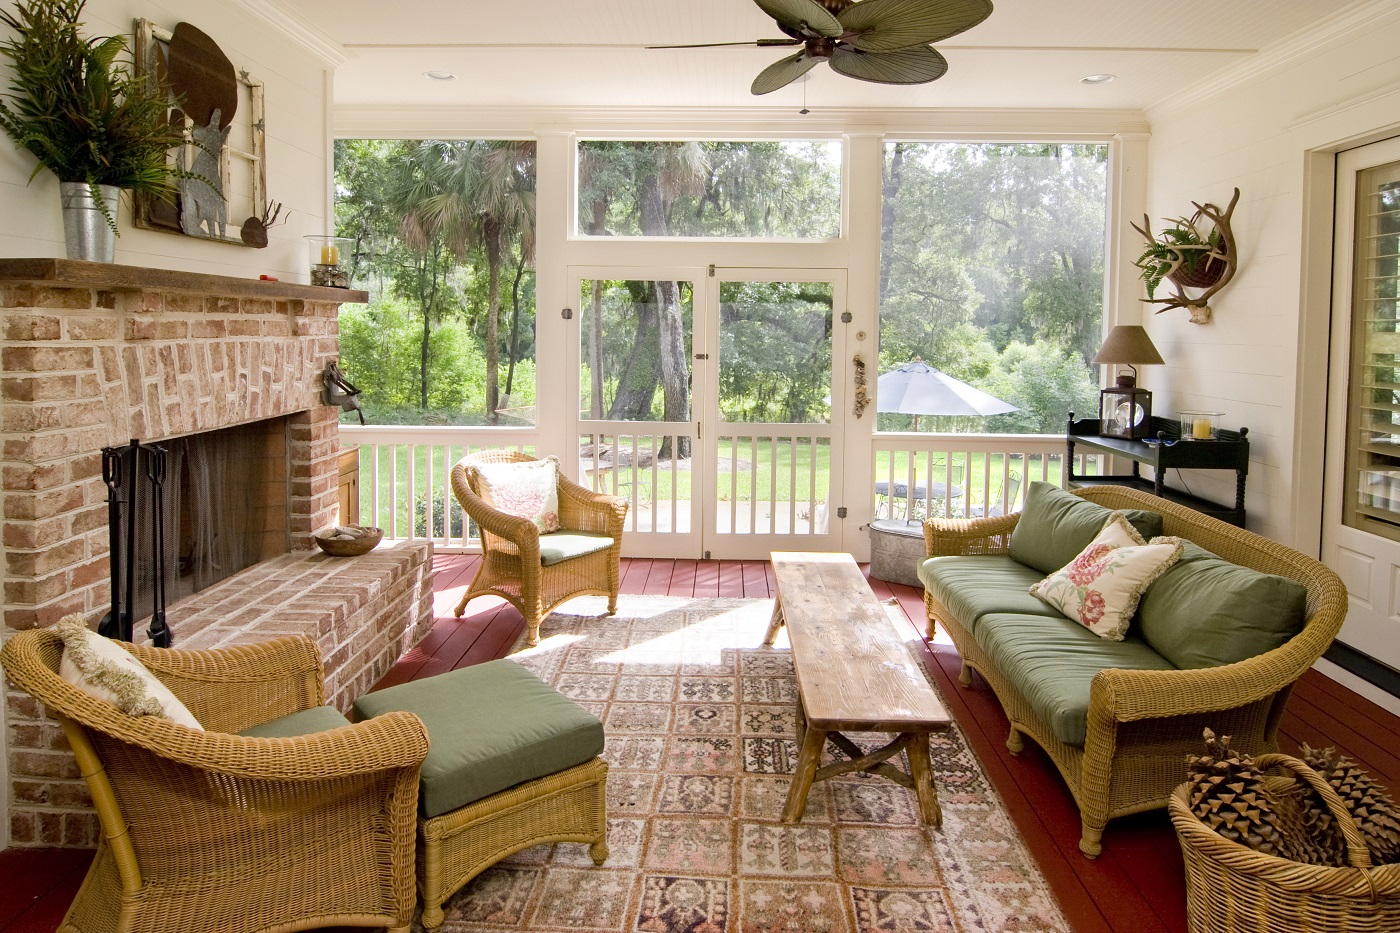 Our-sunrooms-add-much-more-than-a-screened-porch-or-deck